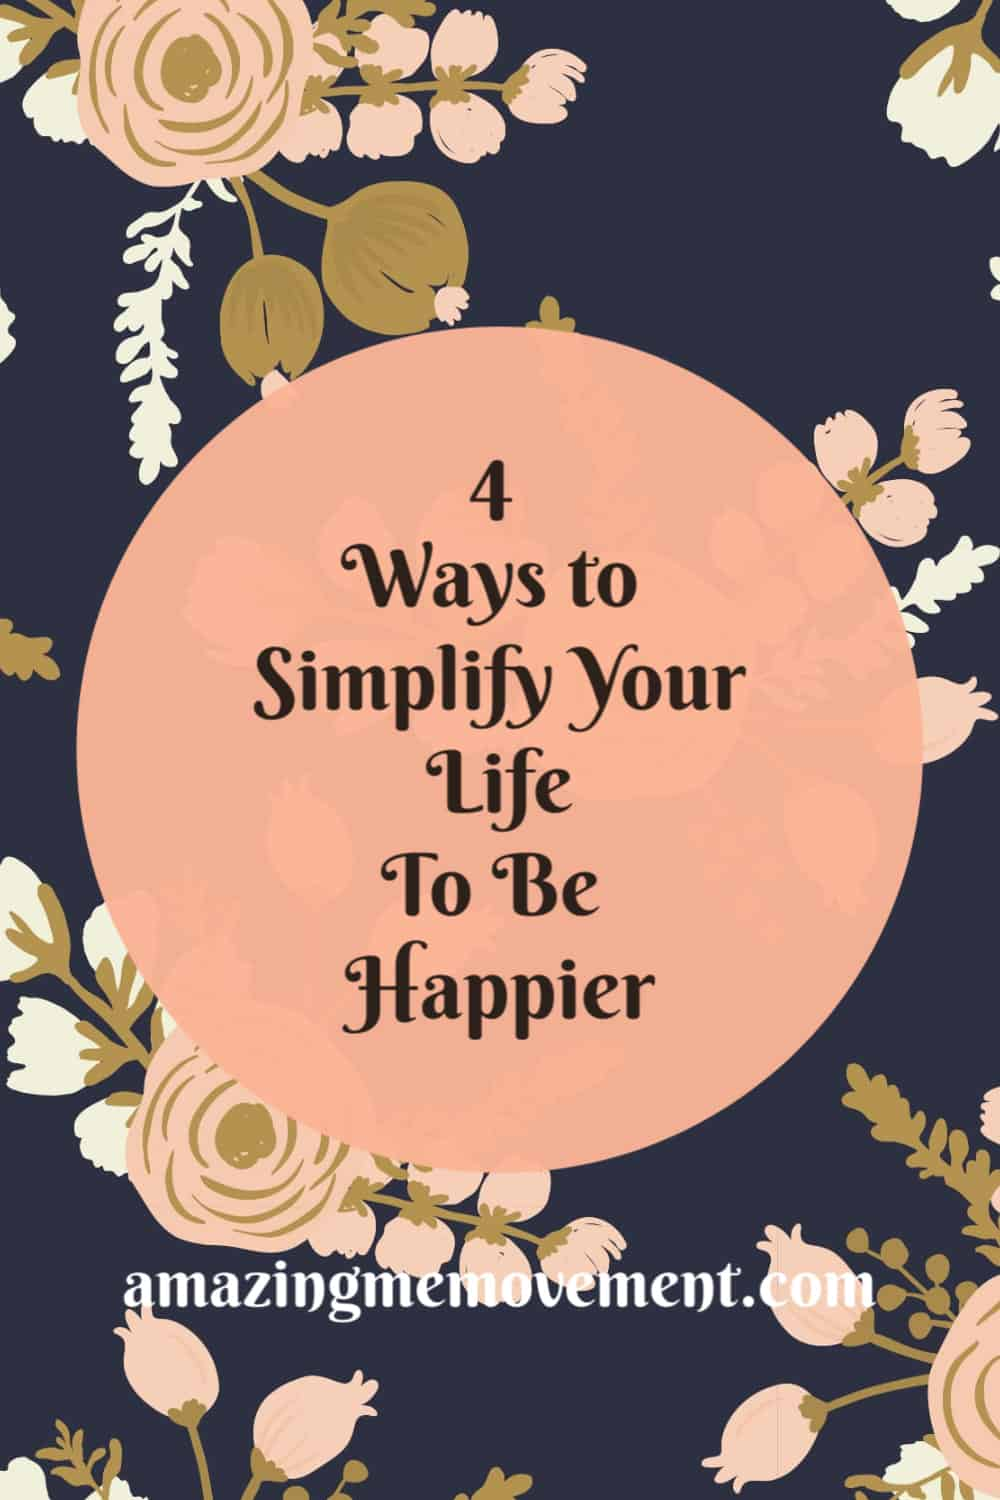 4 ways simplify your life